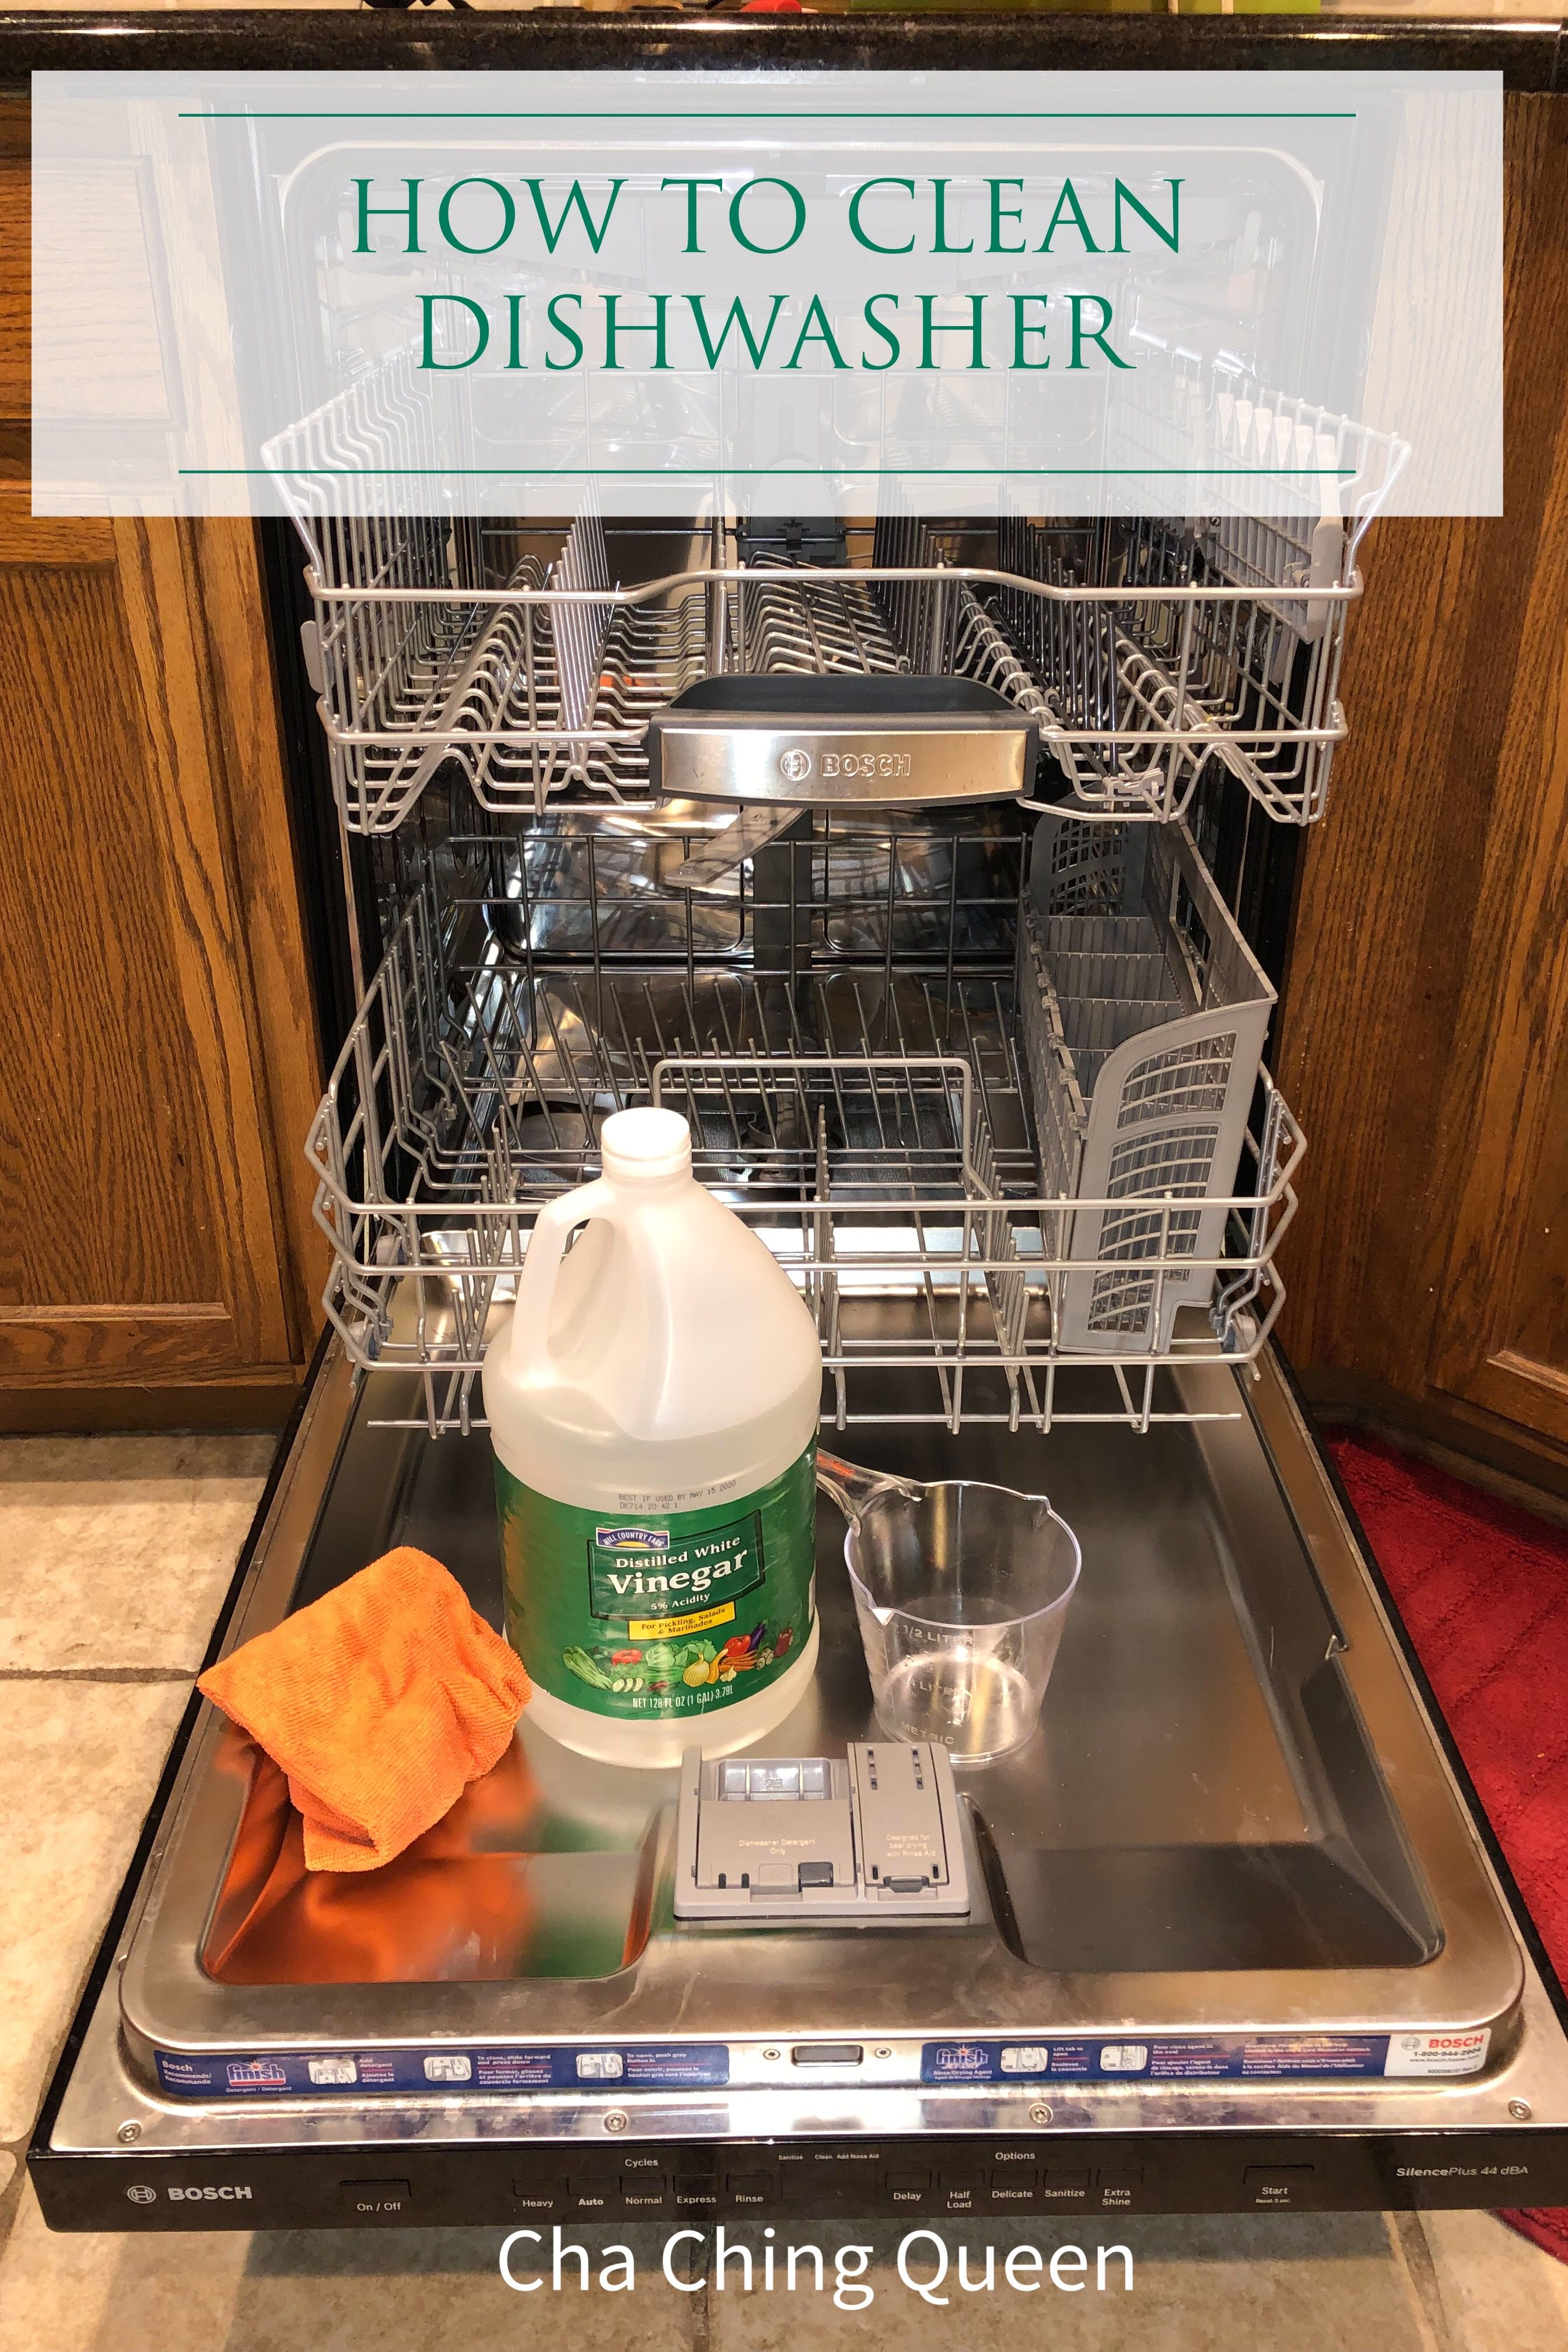 How To Clean Your Dishwasher With Vinegar And Cleaning Tablets Cha Ching Queen Cleaning Your Dishwasher Clean Dishwasher Cleaning Tablets